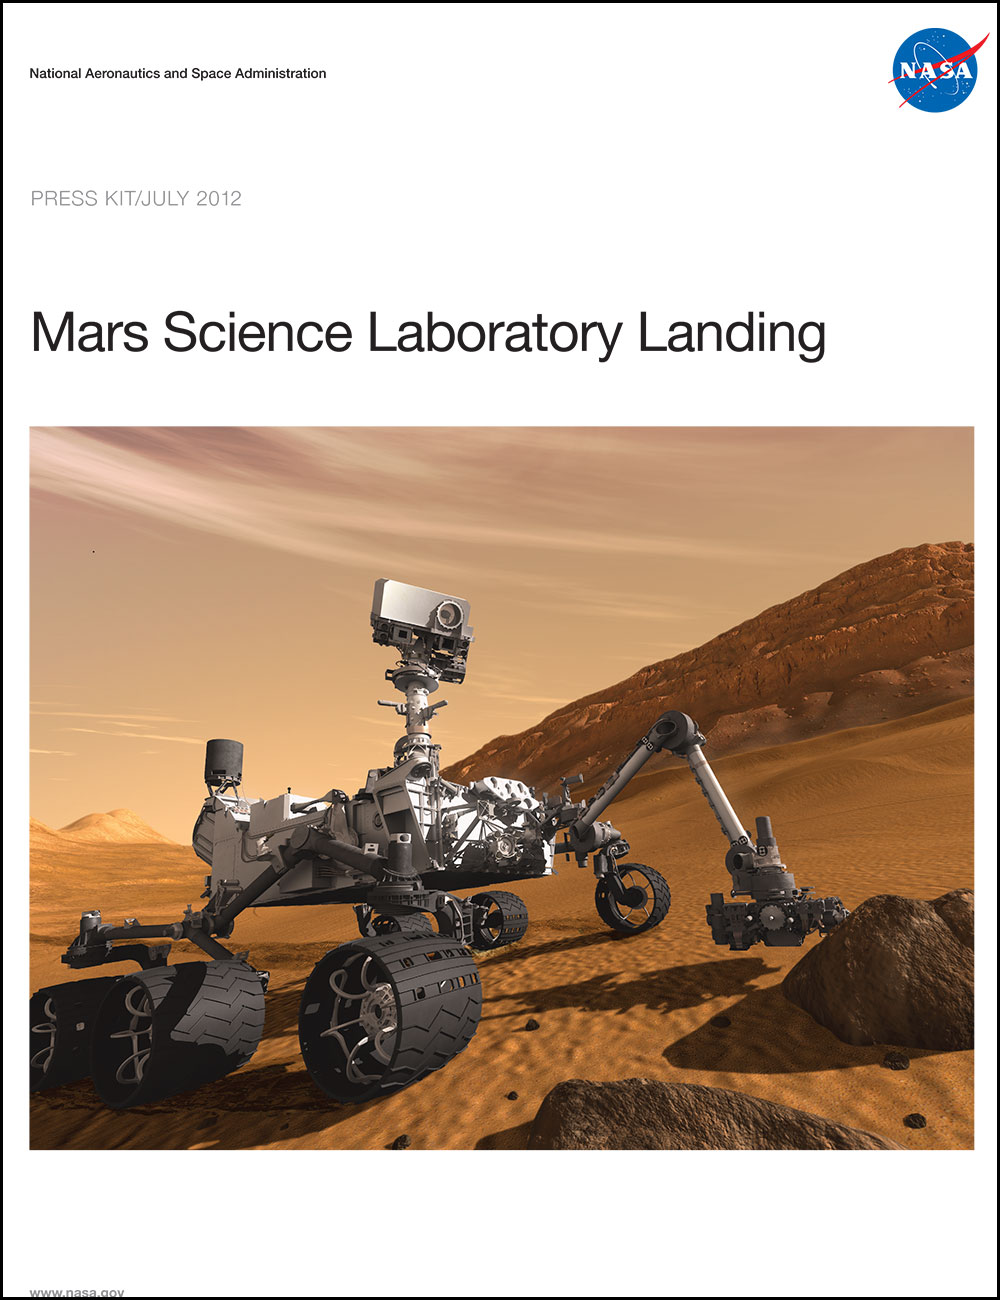 MSL landing press kit